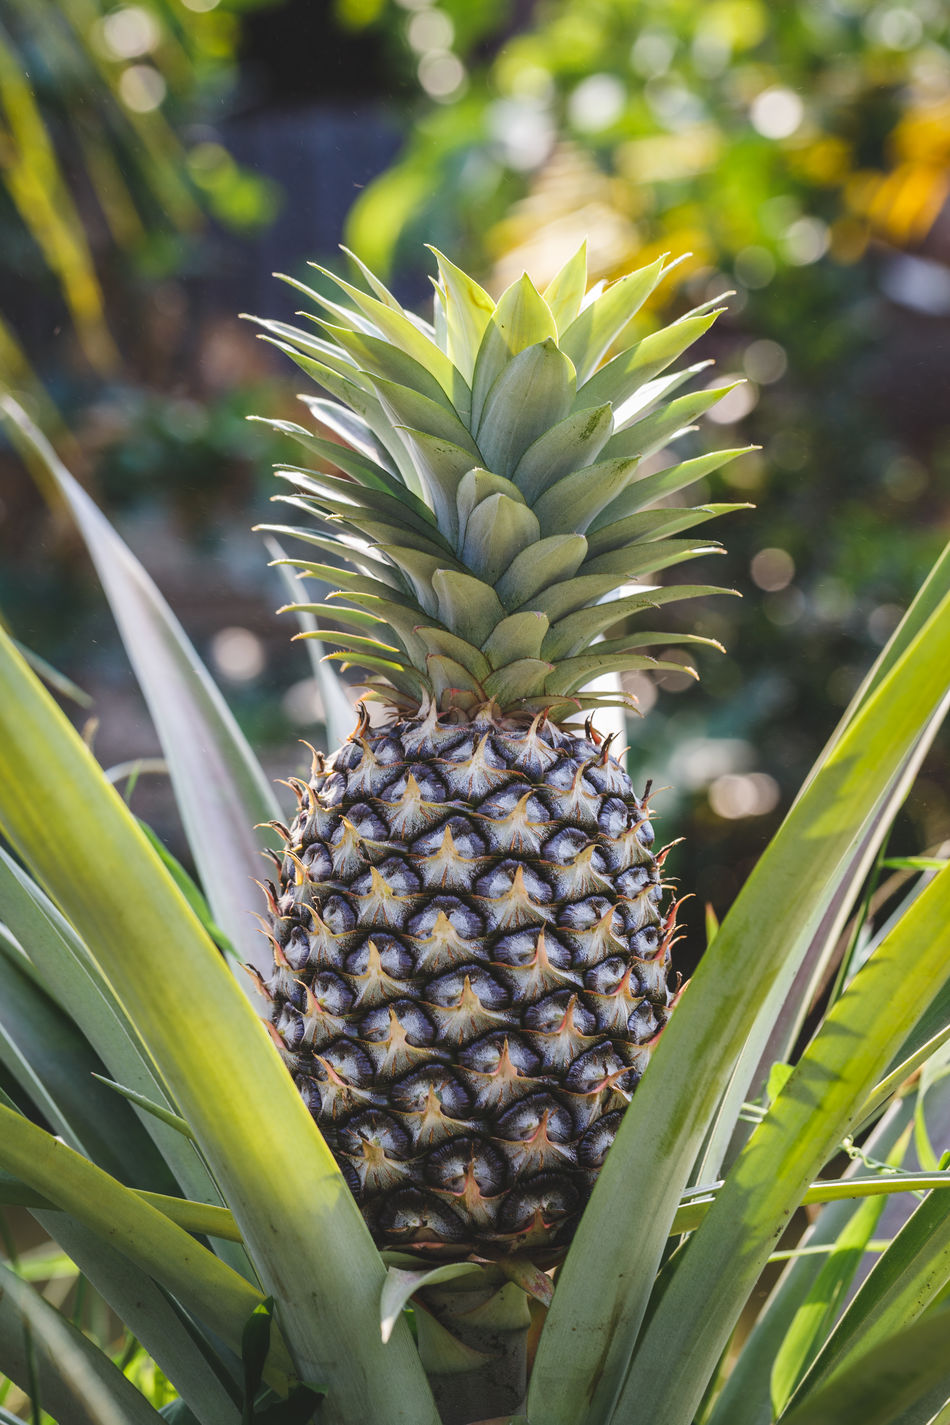 Pineapple tree ASIA Beautiful Beauty In Nature Blooming Close-up Flower Fresh Fruit Garden Grass Green Growth Healthy Eating Leaf Leisure Activity Light Macro Nature Pineapple Plant Pure Sunlight Tropical Vietnam Wallpaper